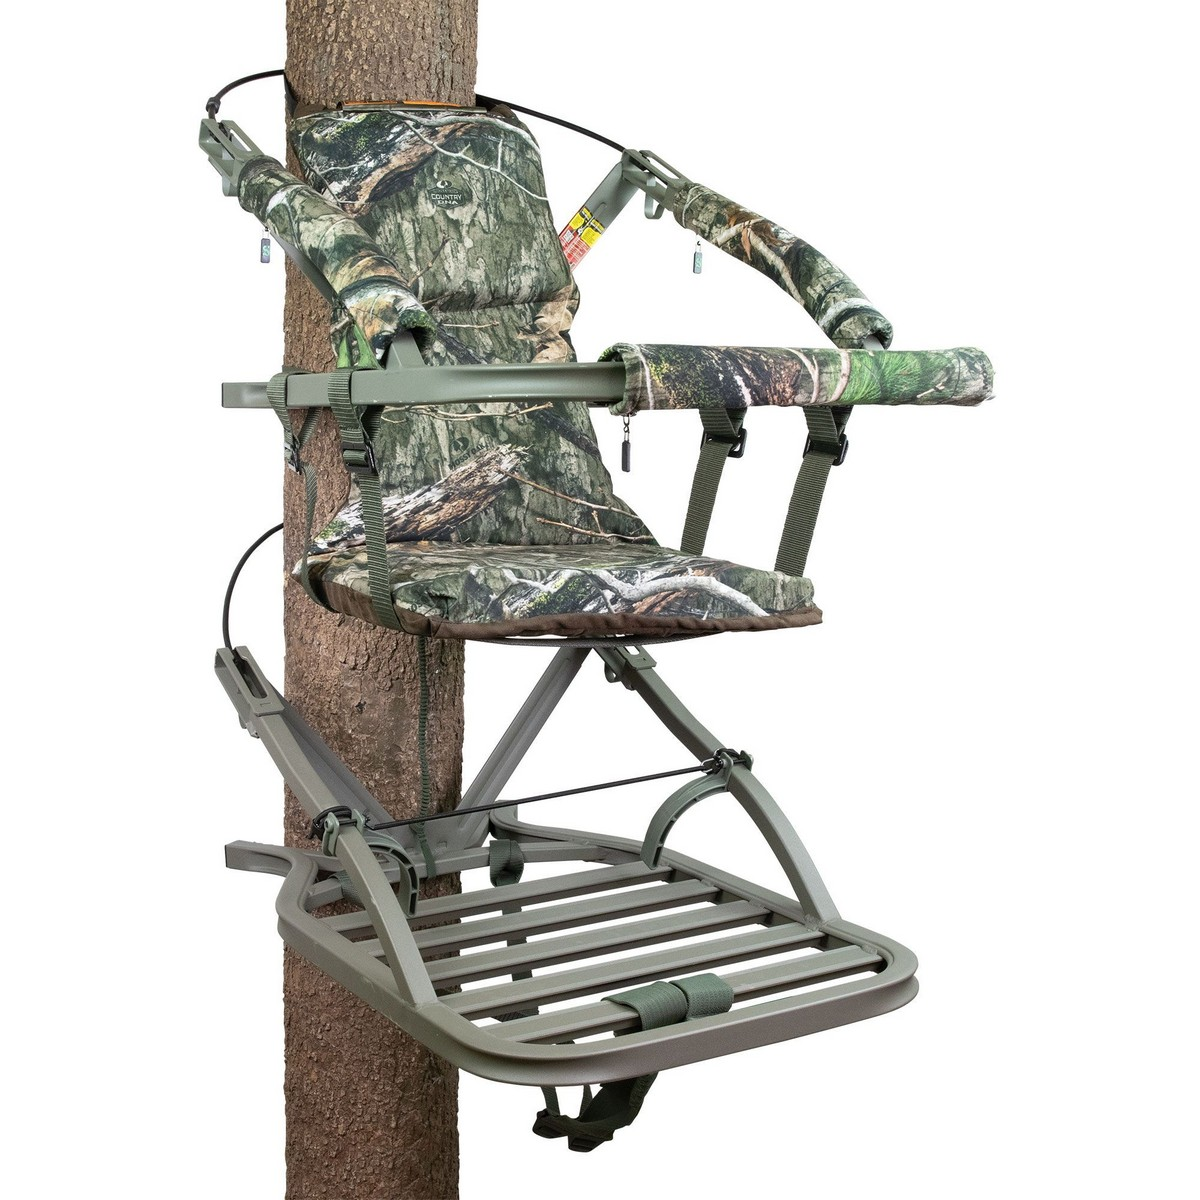 summit trophy chair review round padded folding chairs universal replacement treestand seat viper sd climbing